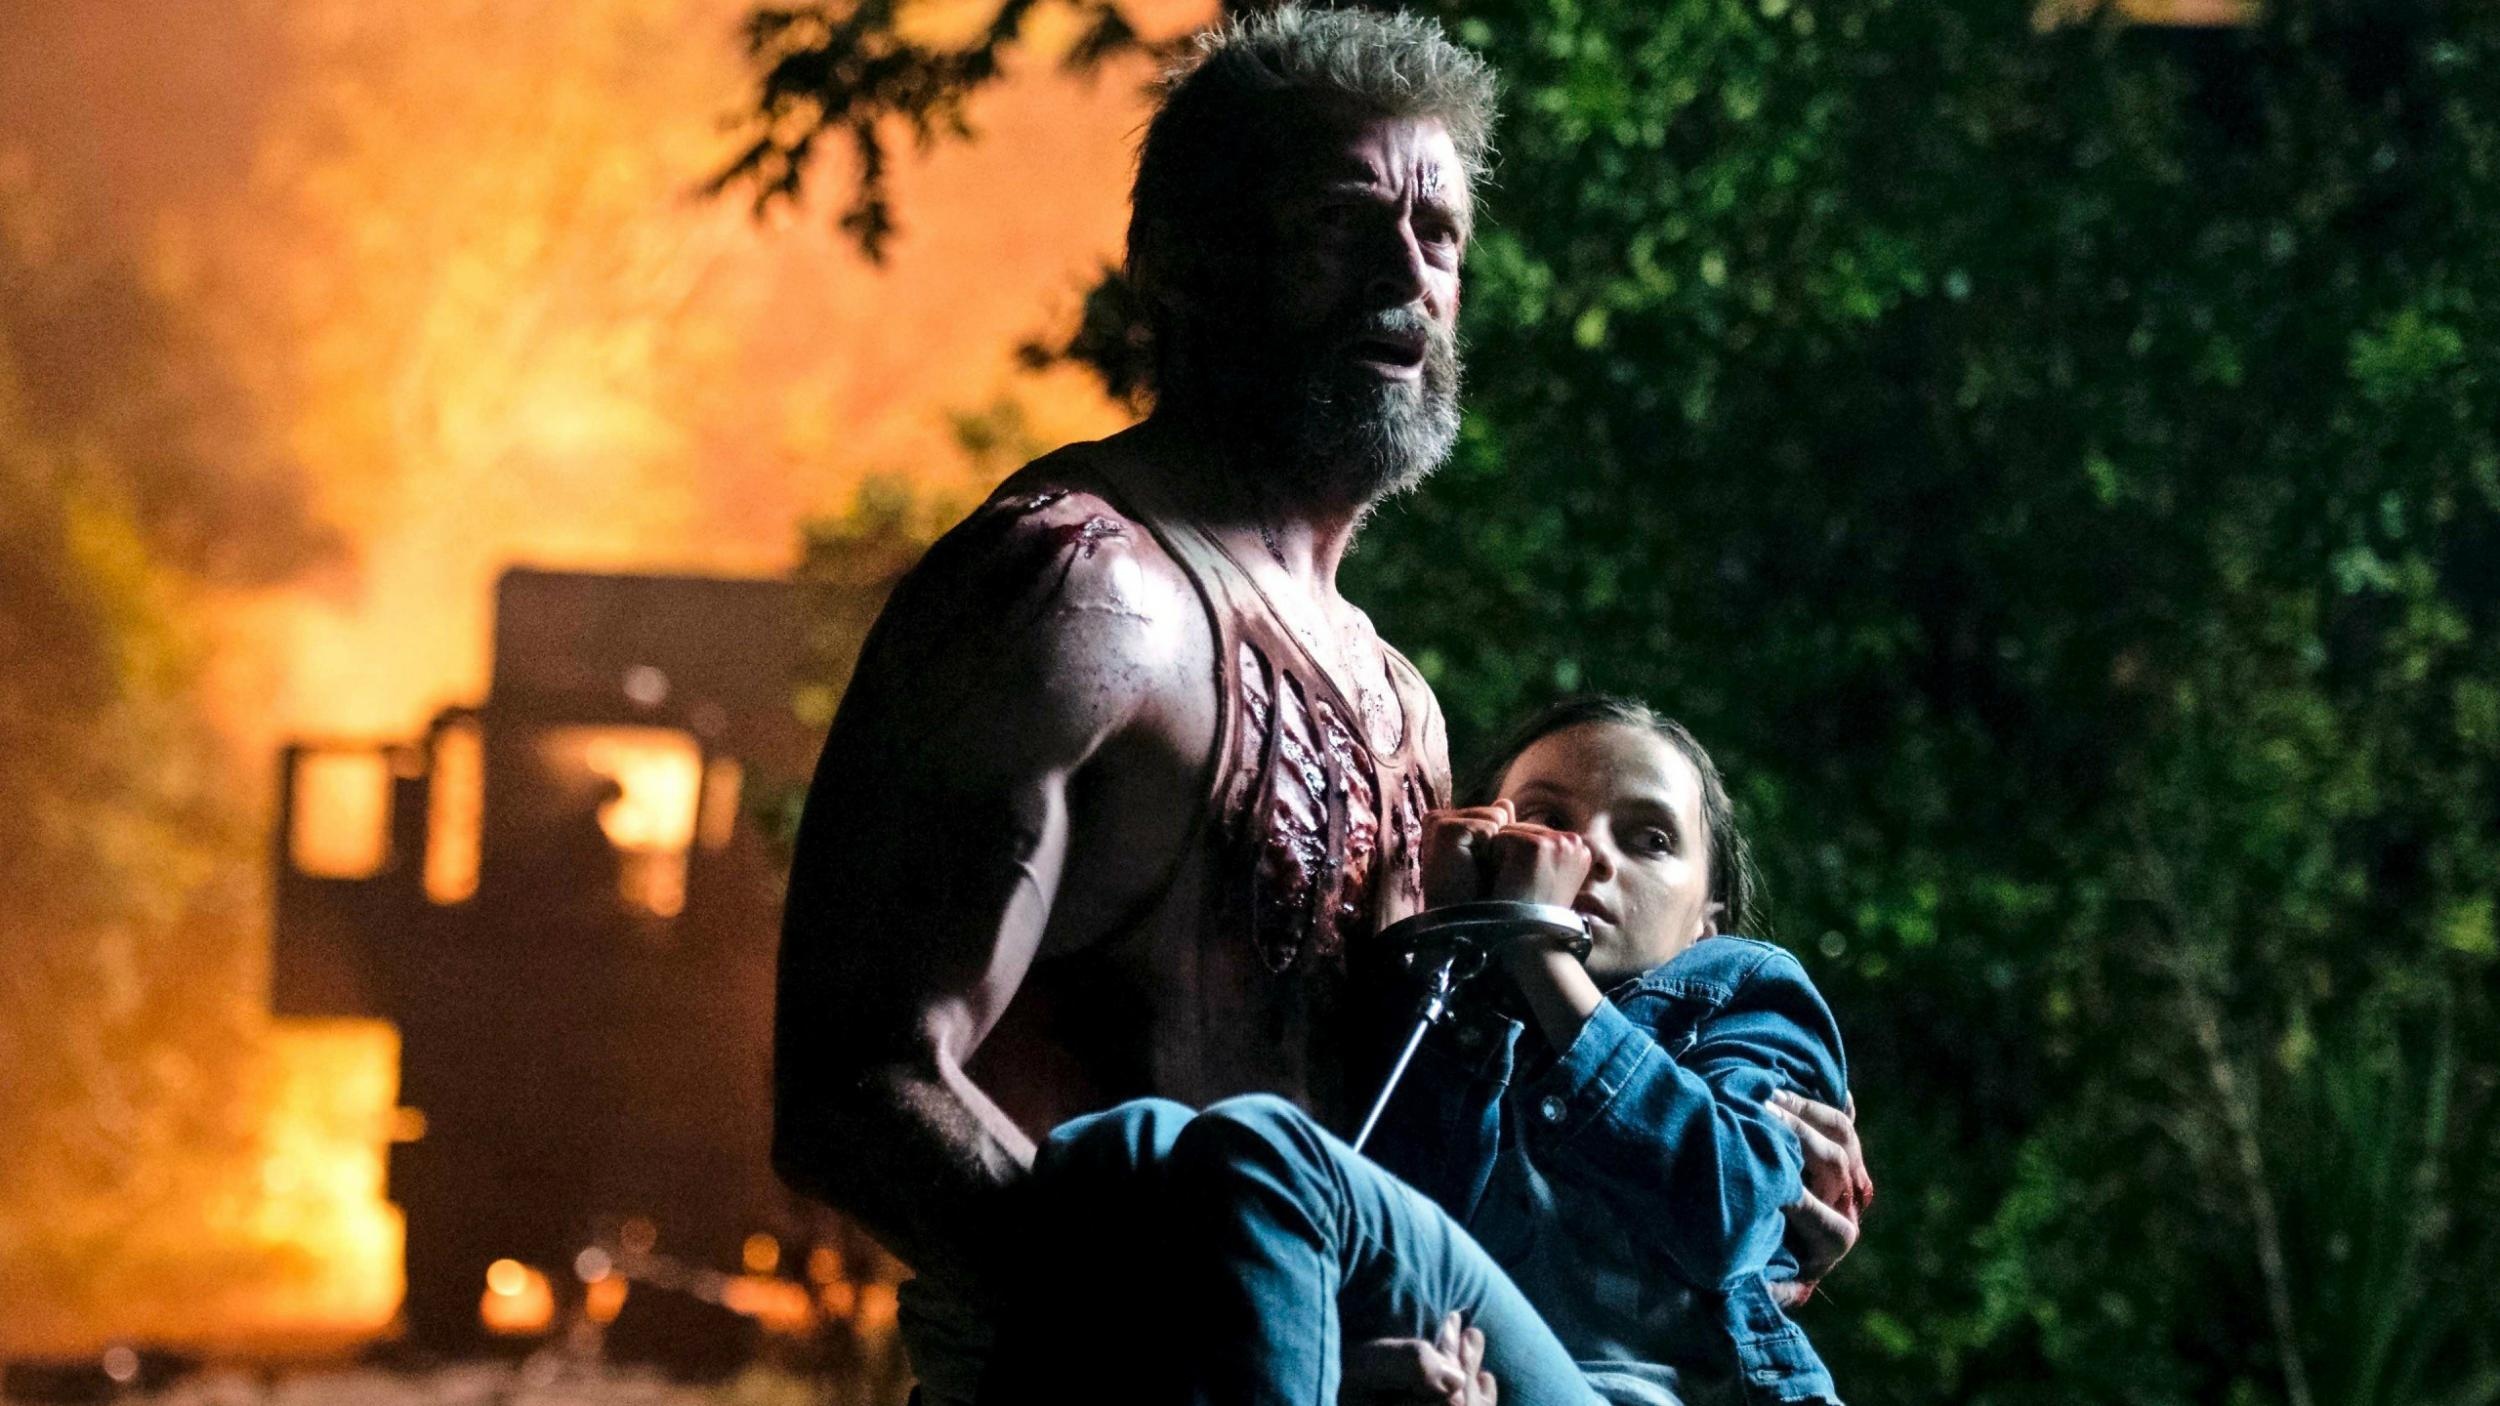 logan ending explained by wolverine director james mangold | the